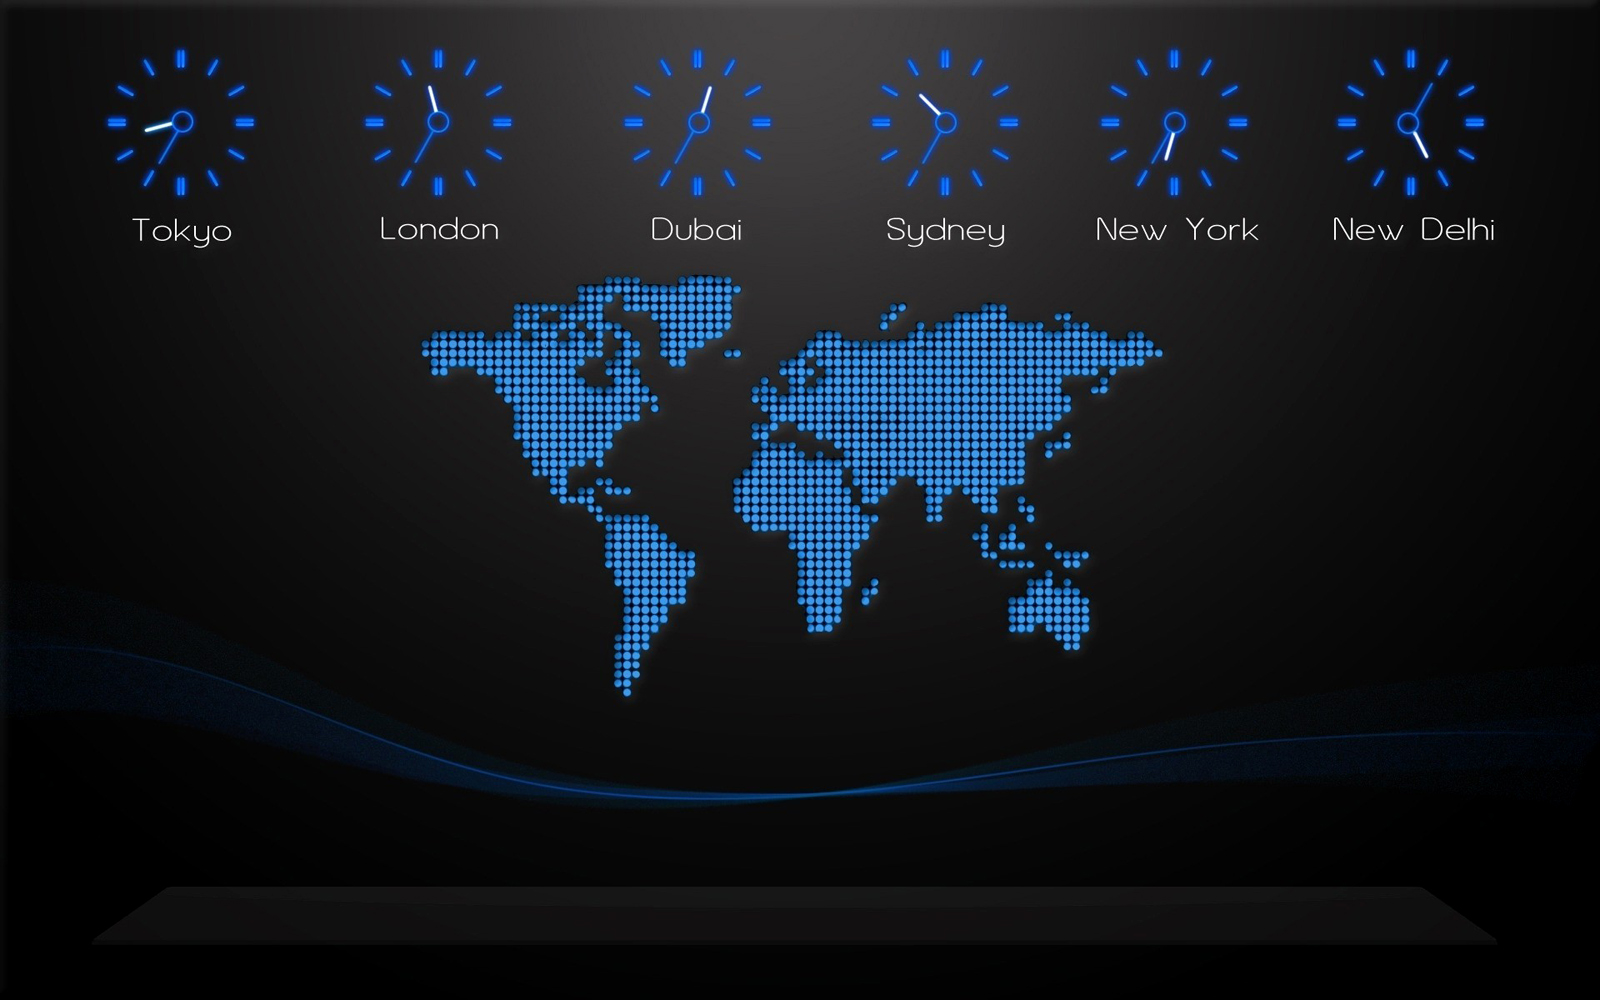 Wallpapers lenovo word map blenovo wallpapersb bwallpaper gumiabroncs Image collections